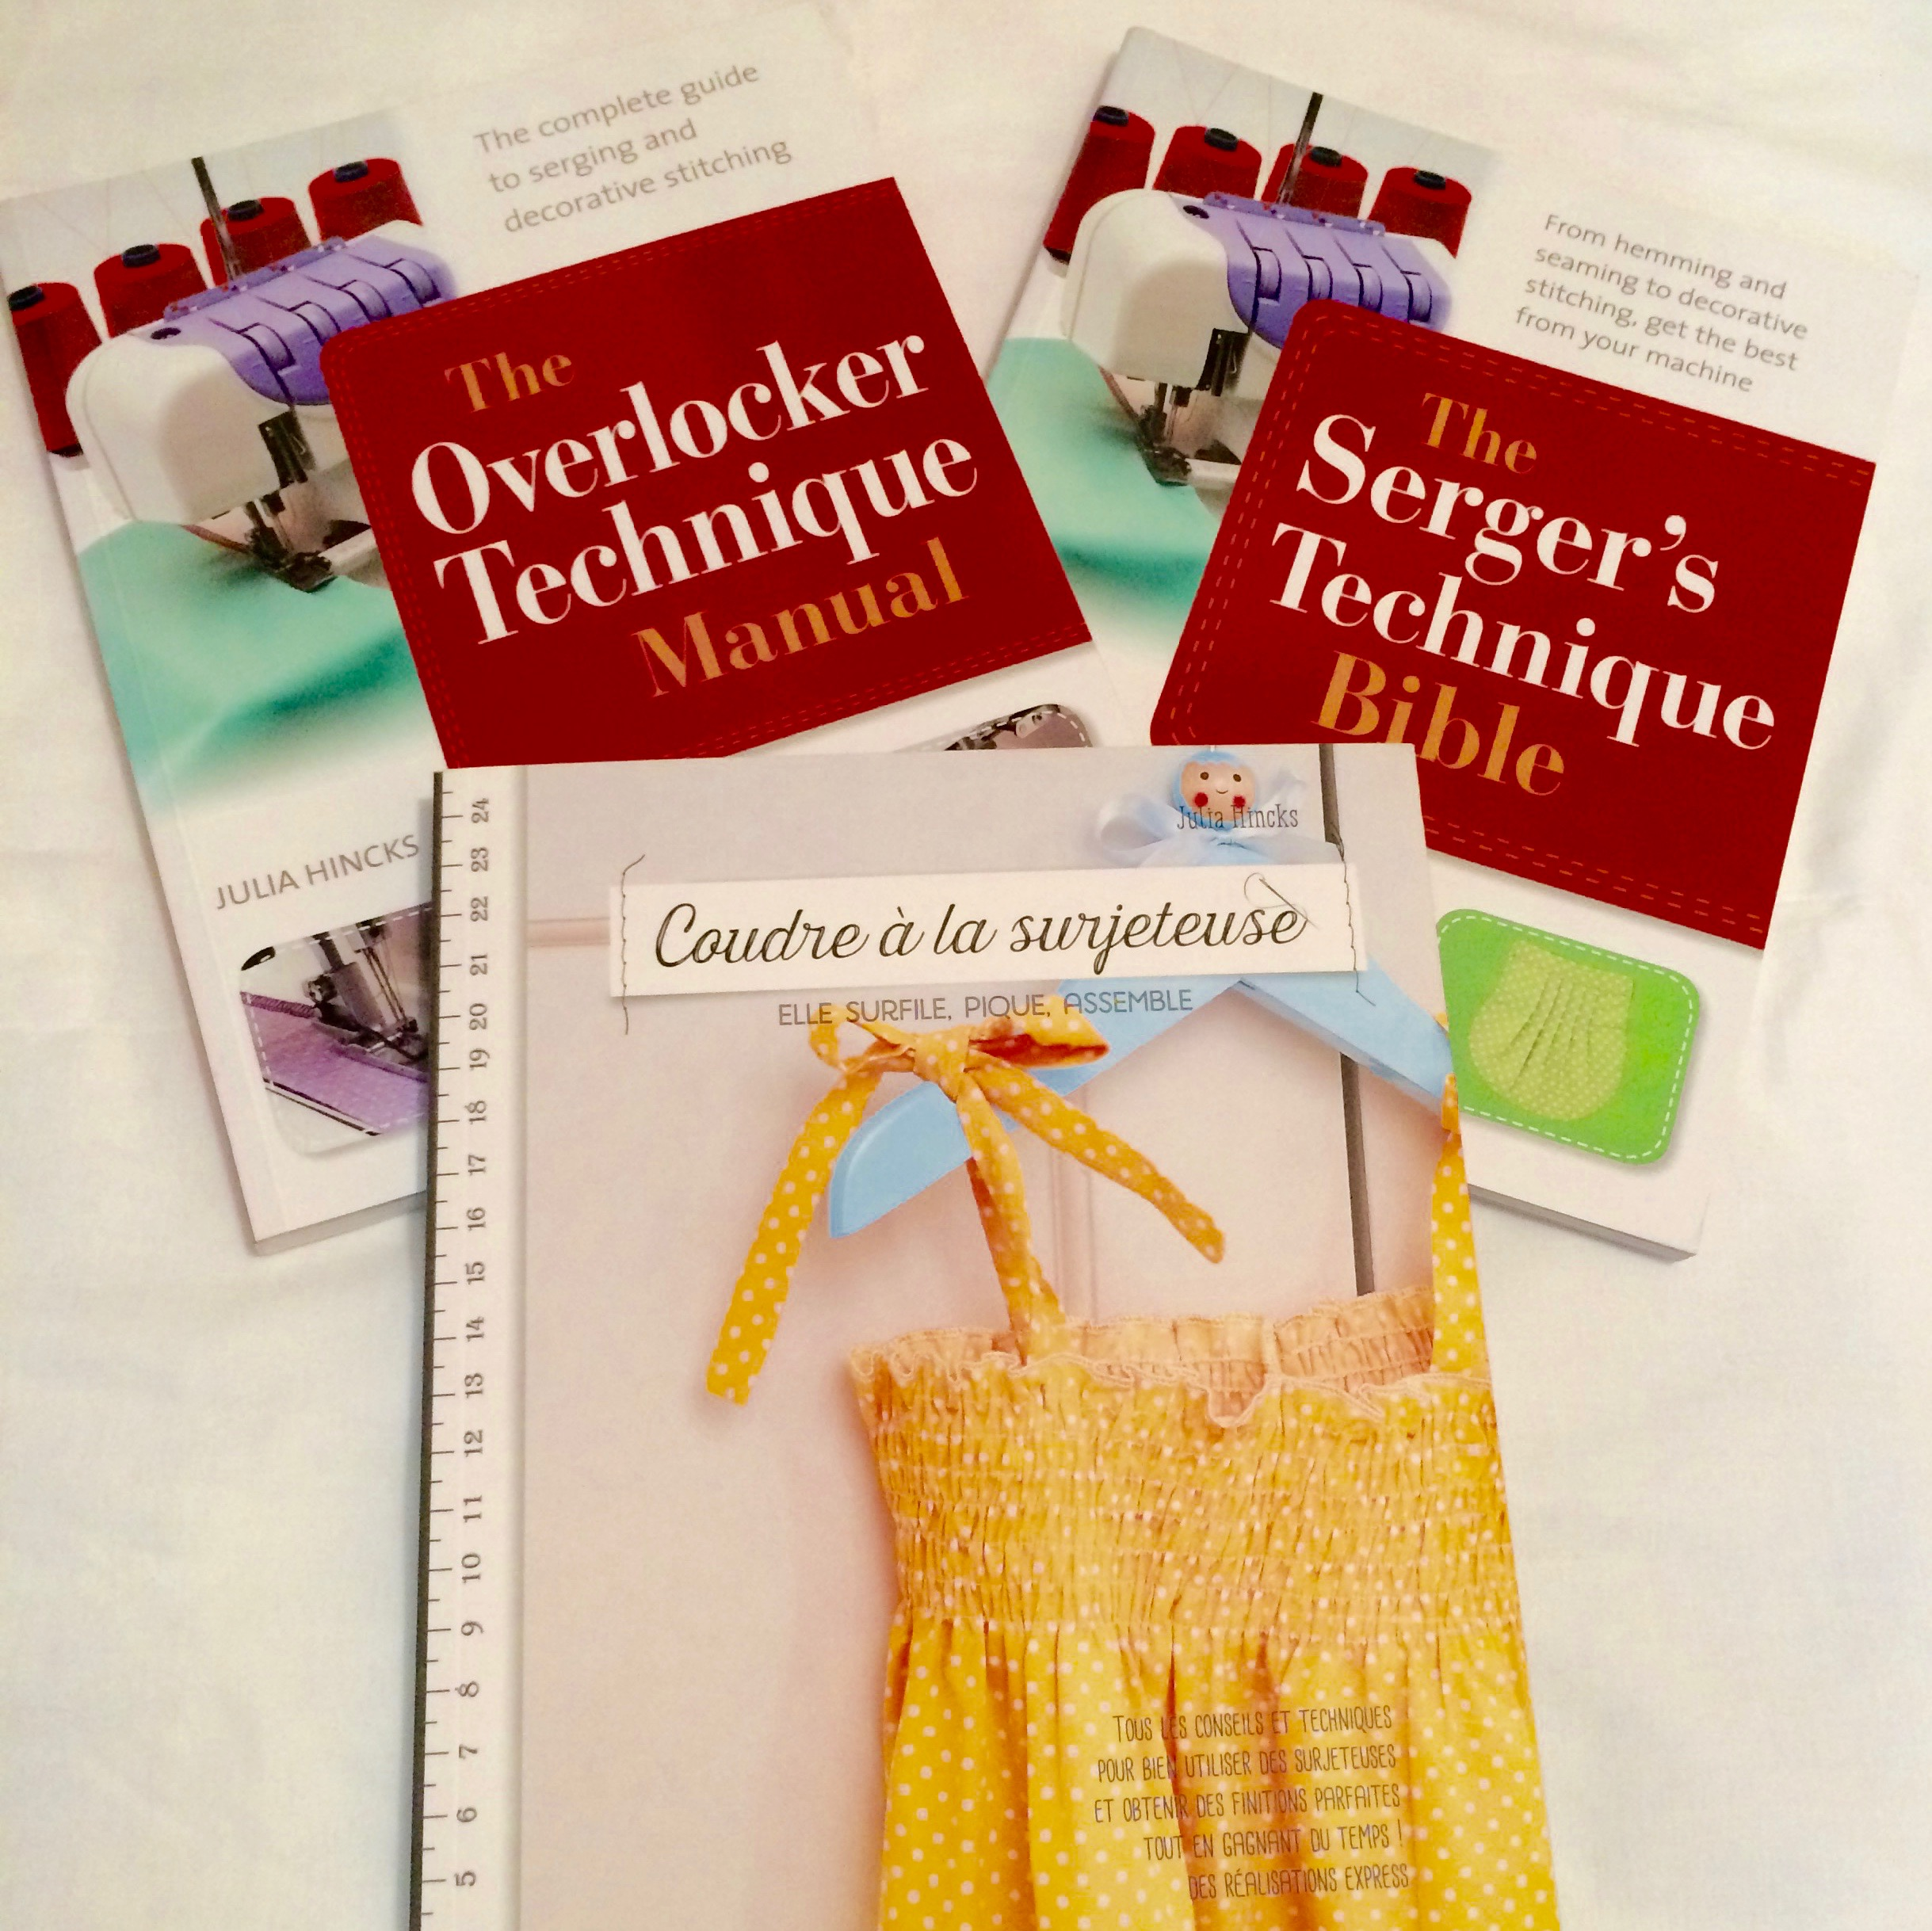 Images of Books by Julia Hincks The Overlocker Technique Manual, The Serger's Technique Bible and Coudre a la surjeteuse